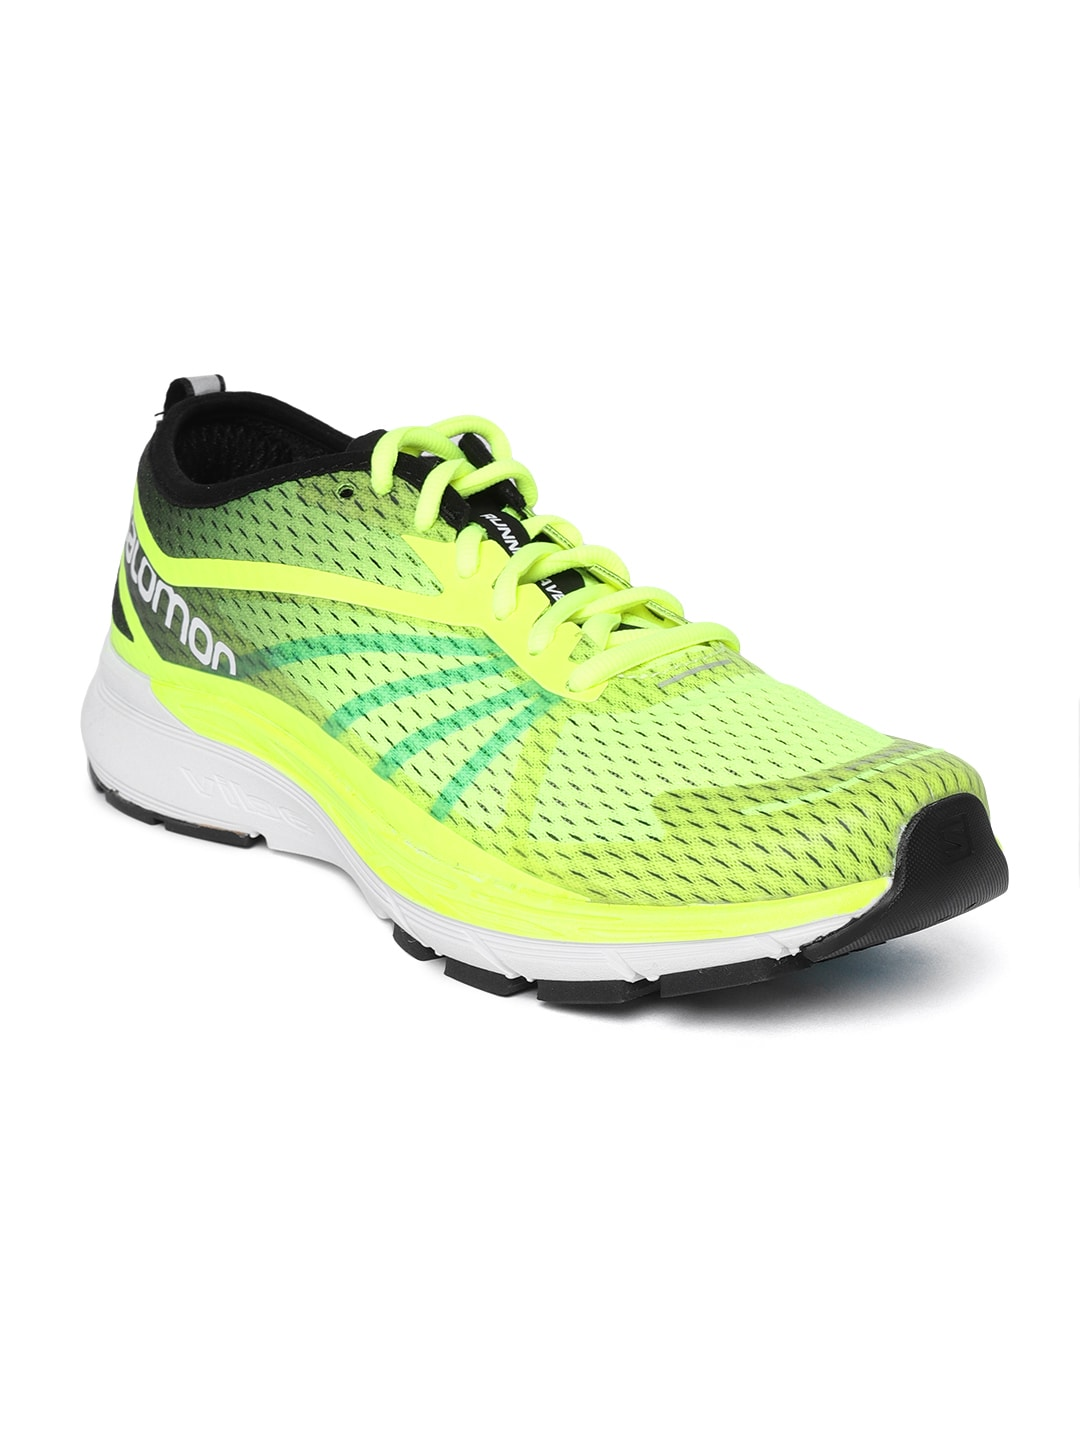 6b40eb9be54 Sports Shoes - Buy Sport Shoes For Men   Women Online